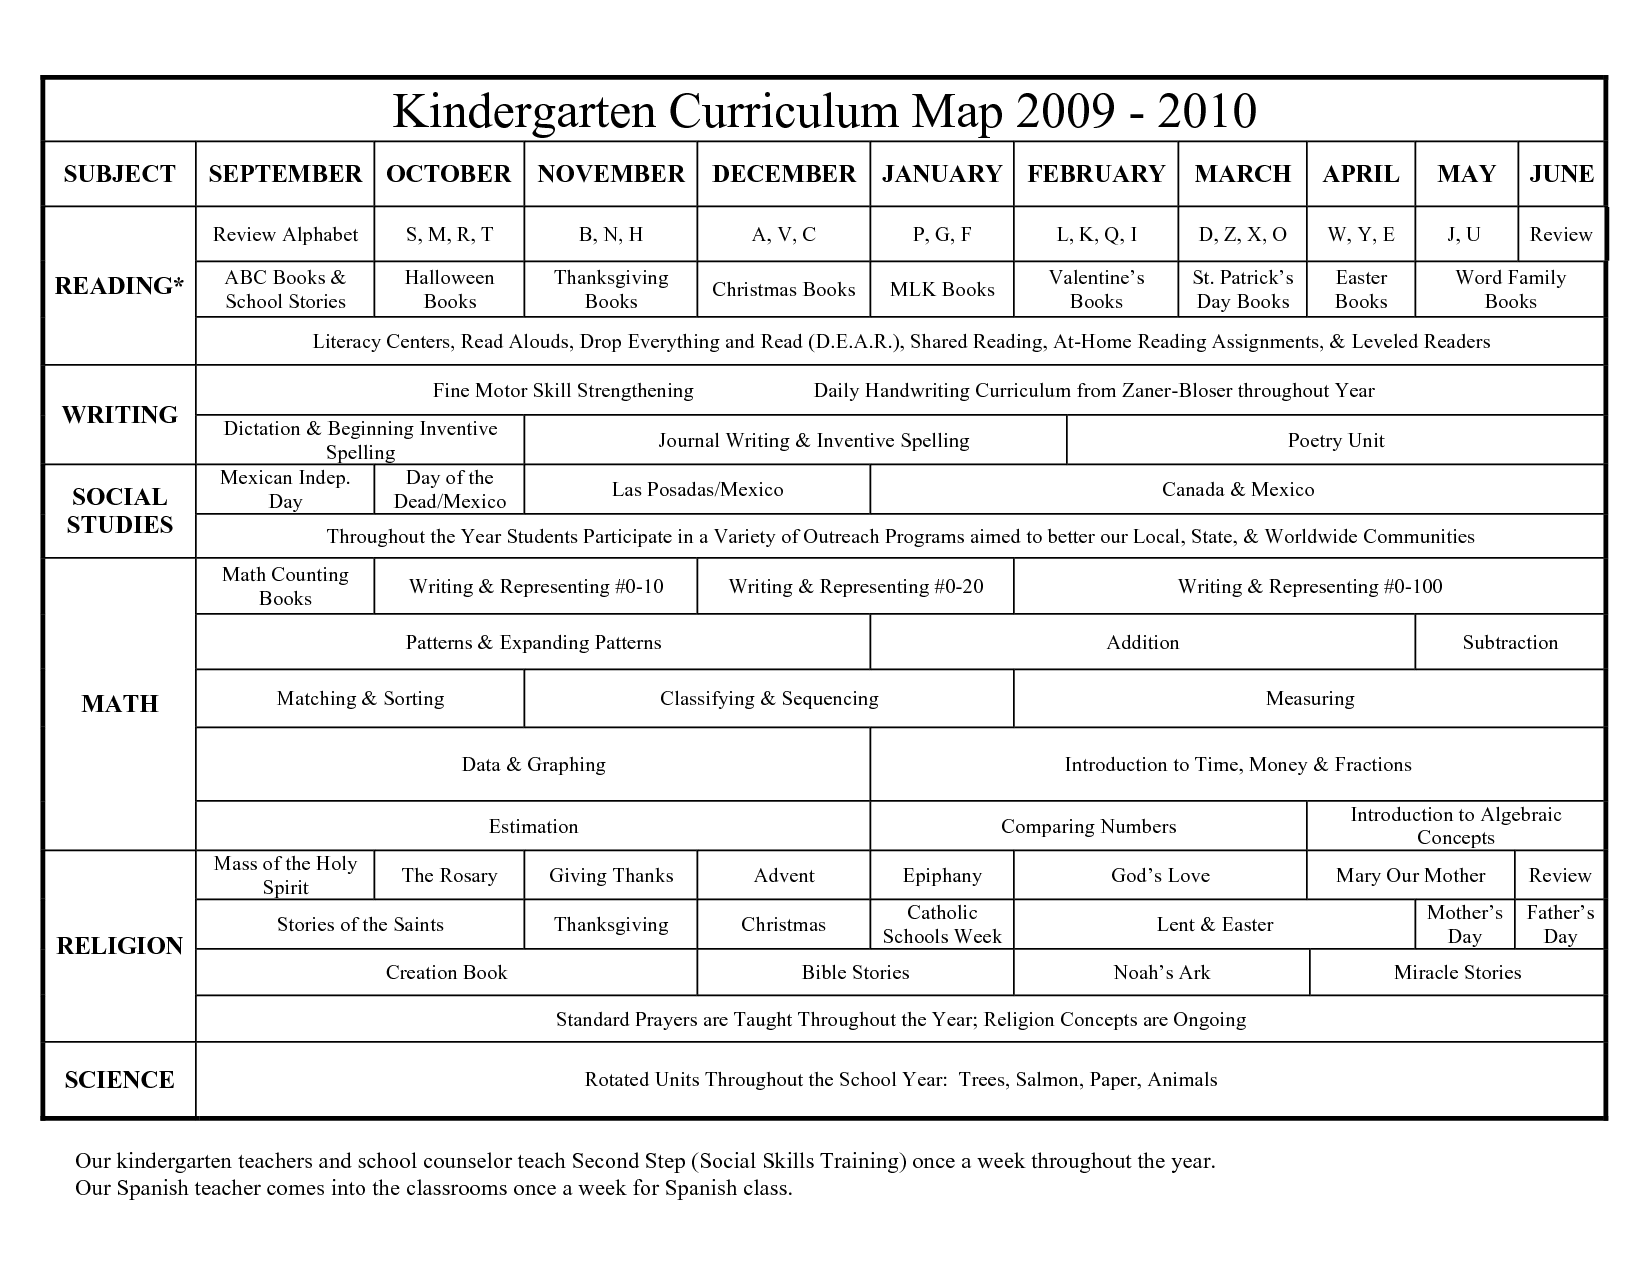 Kindergarten curriculum map google search school for Kindergarten curriculum map template